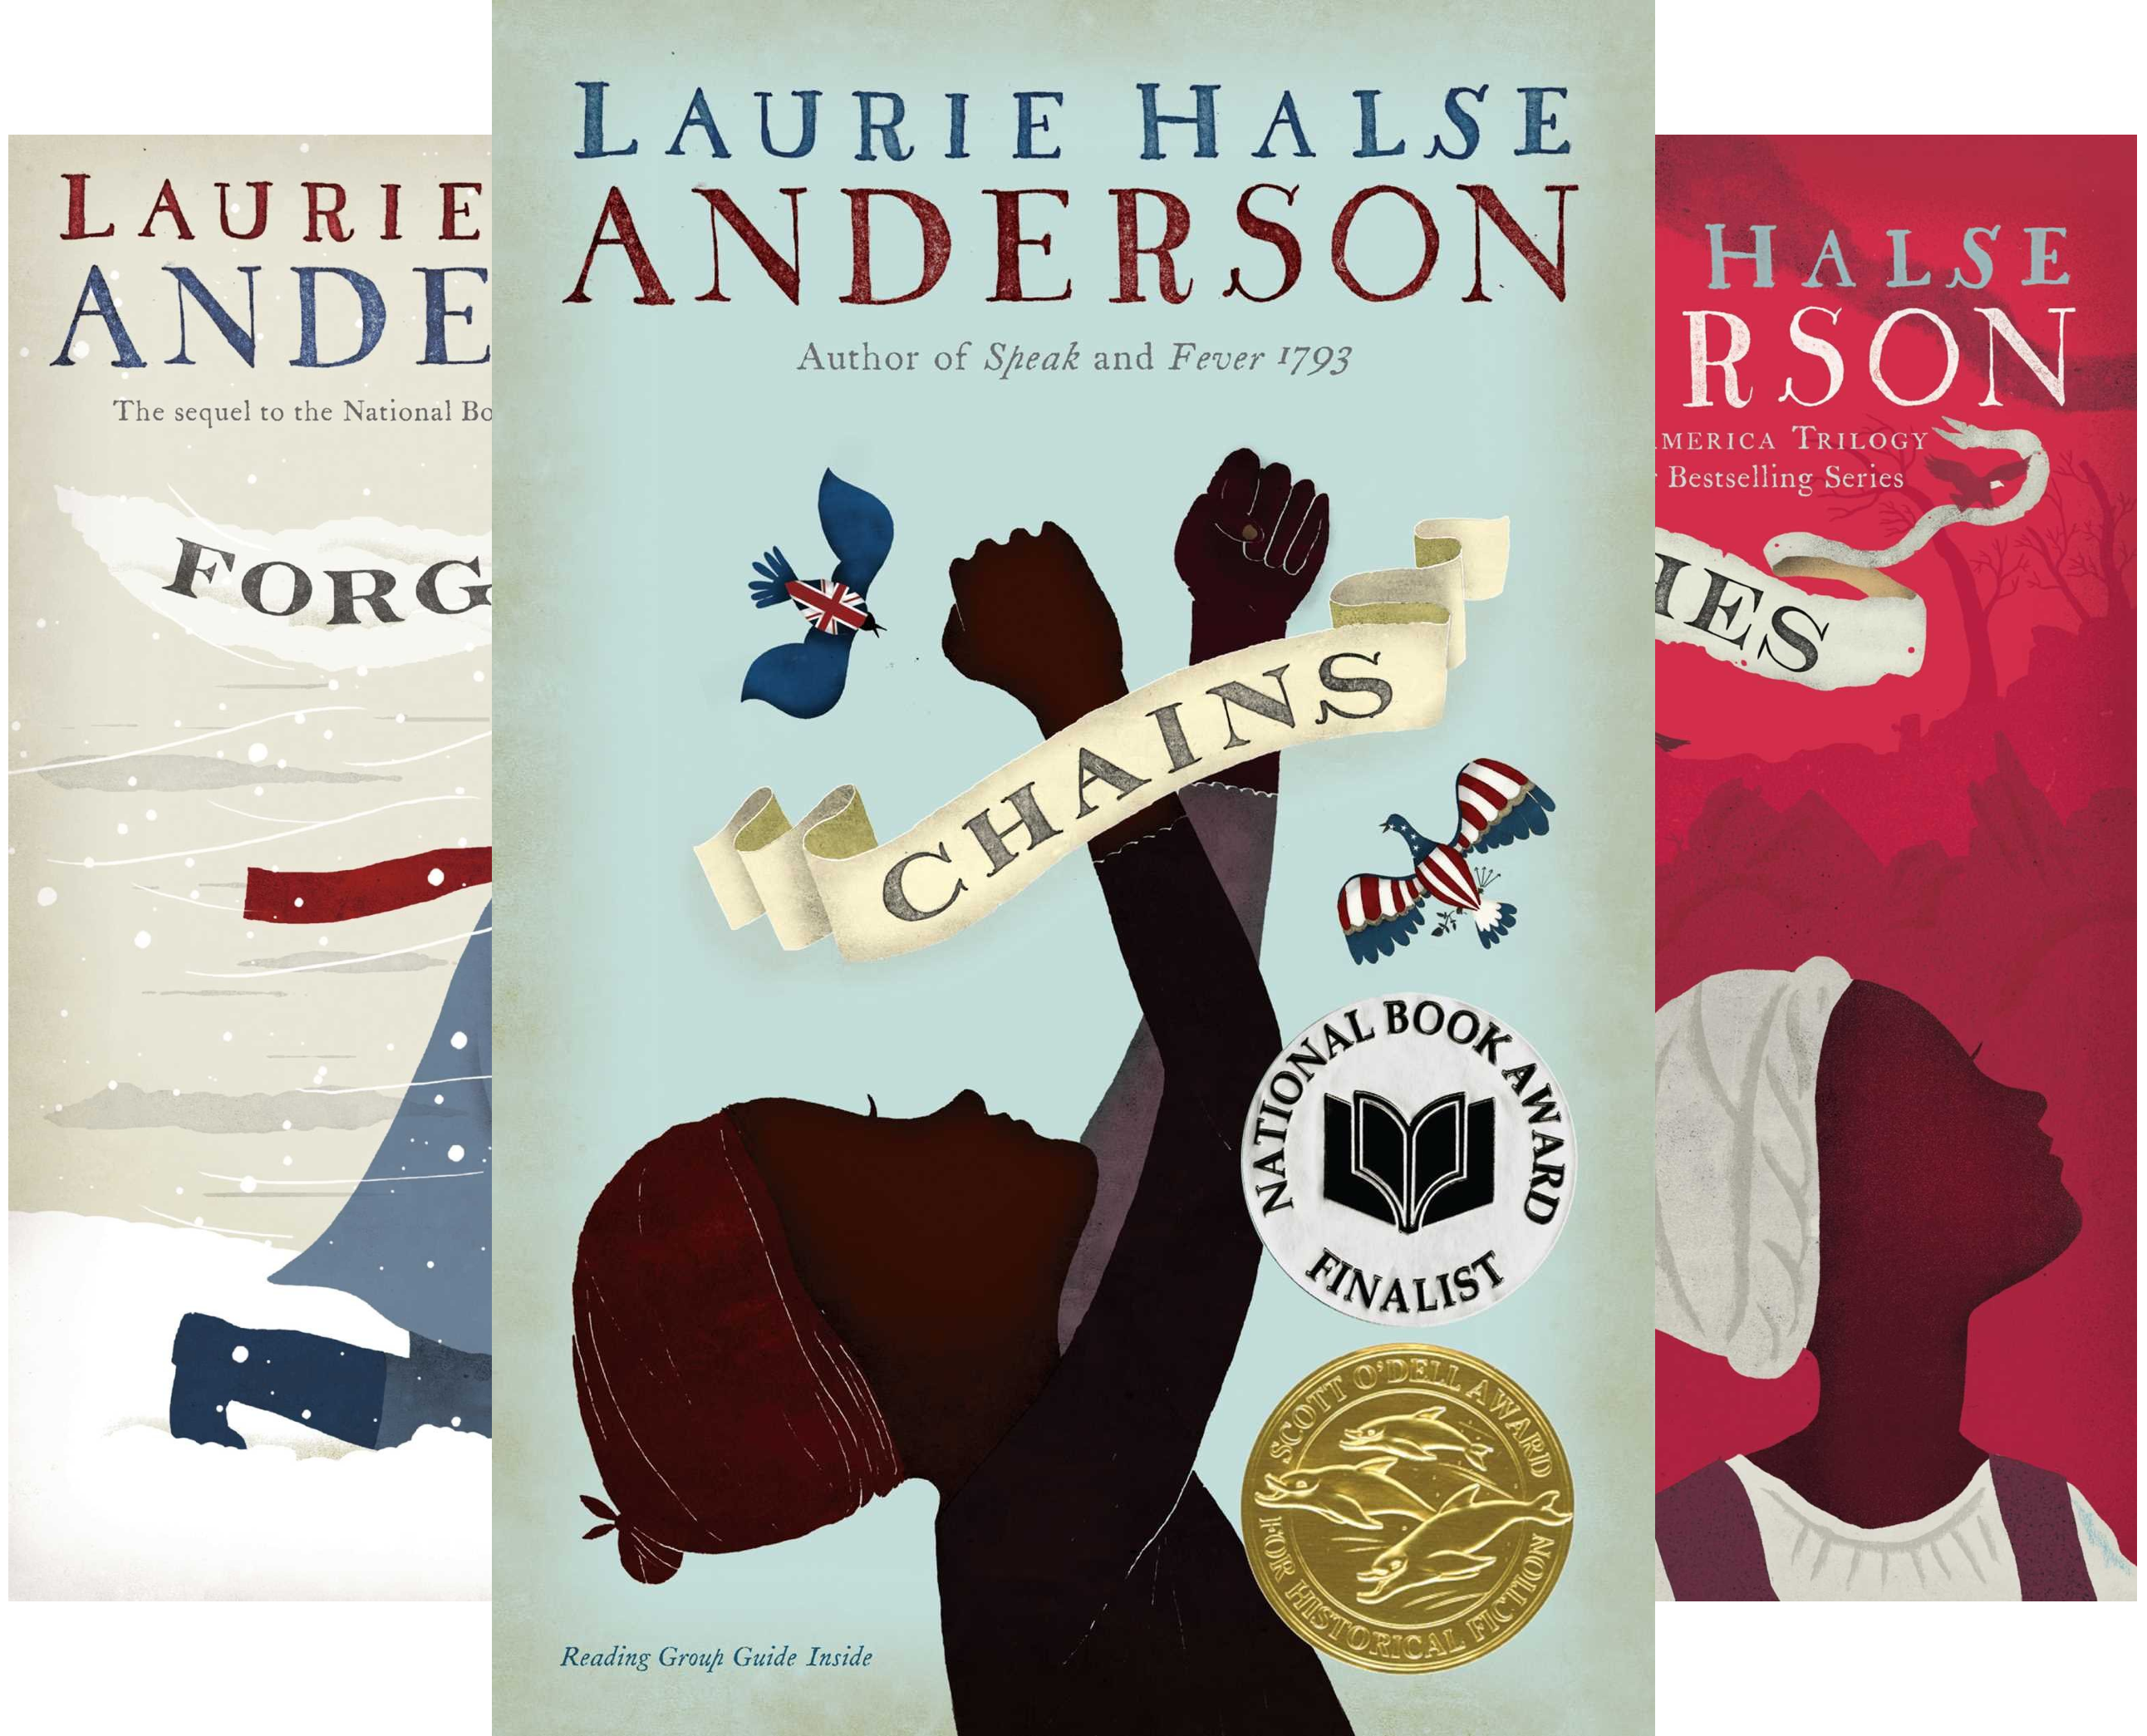 The 1 best chains by laurie halse anderson ebook 2020